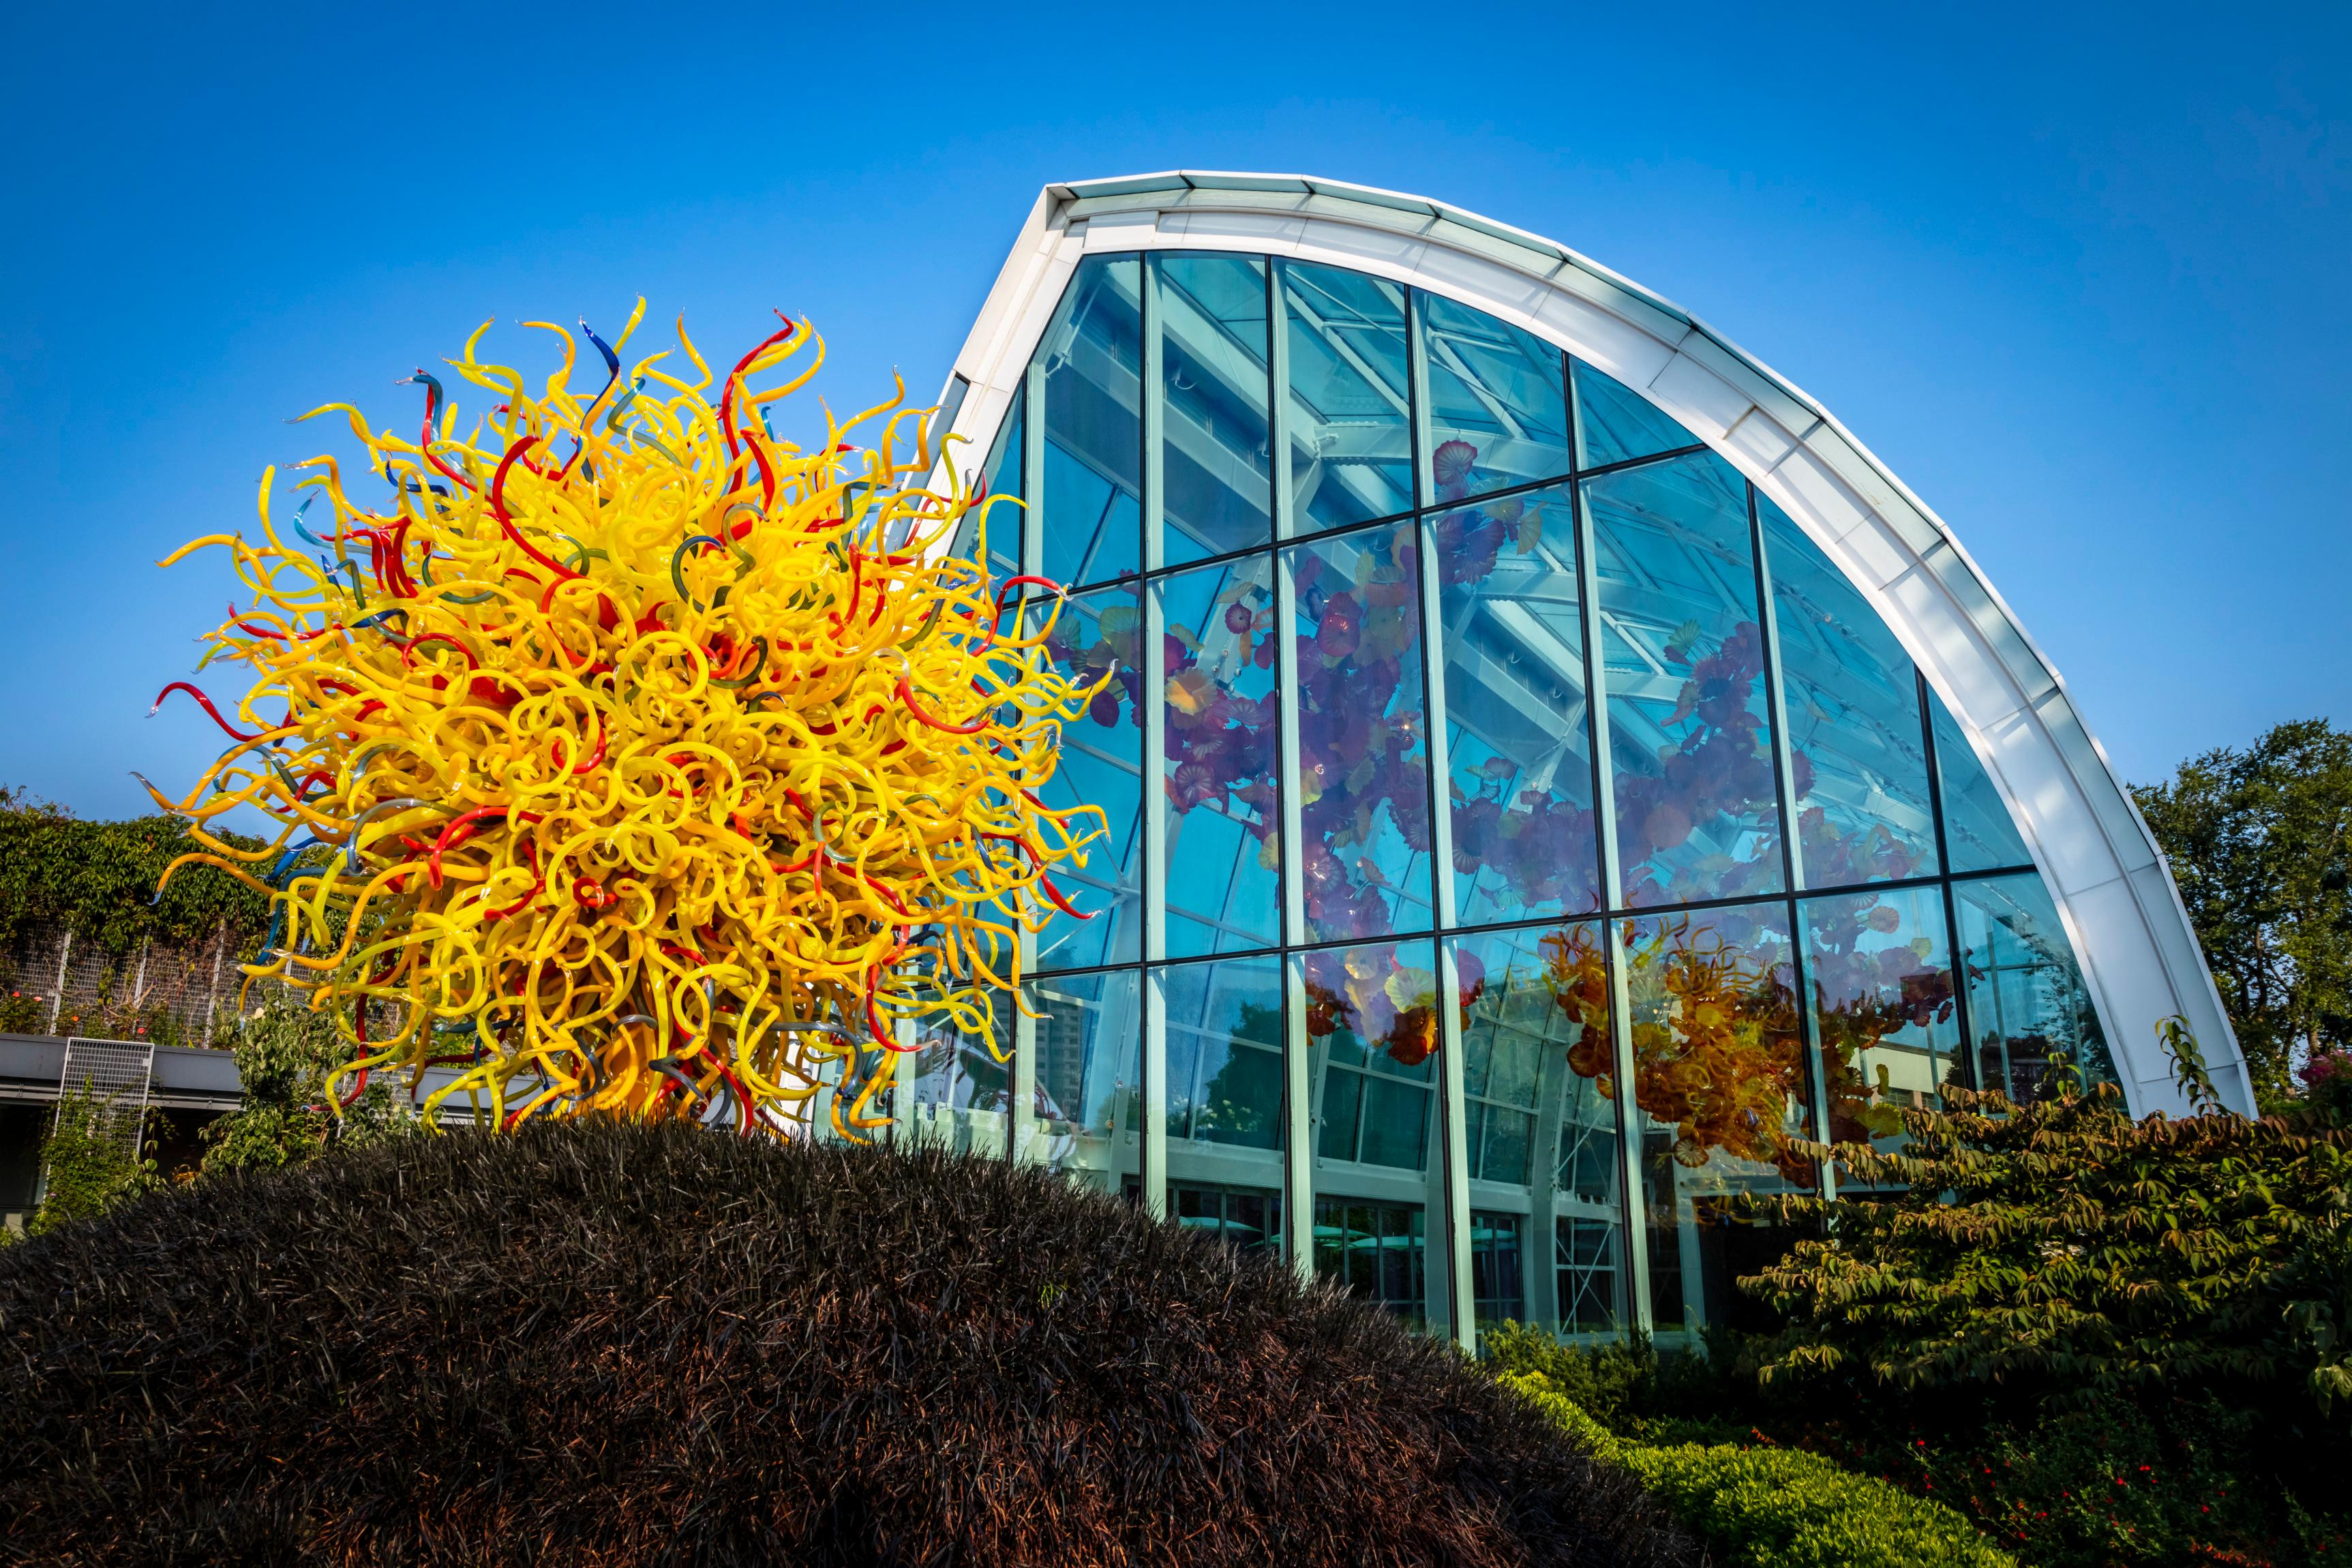 Chihuly gardens & glass chihuly, dale, rose, barbara, roberts, lisa c., mcdonnell, mark, garfield park conservatory (chicago, ill.) on amazon.com. Dale Chihuly Pioneering Glass Artist Is Building A Major Legacy Artsy